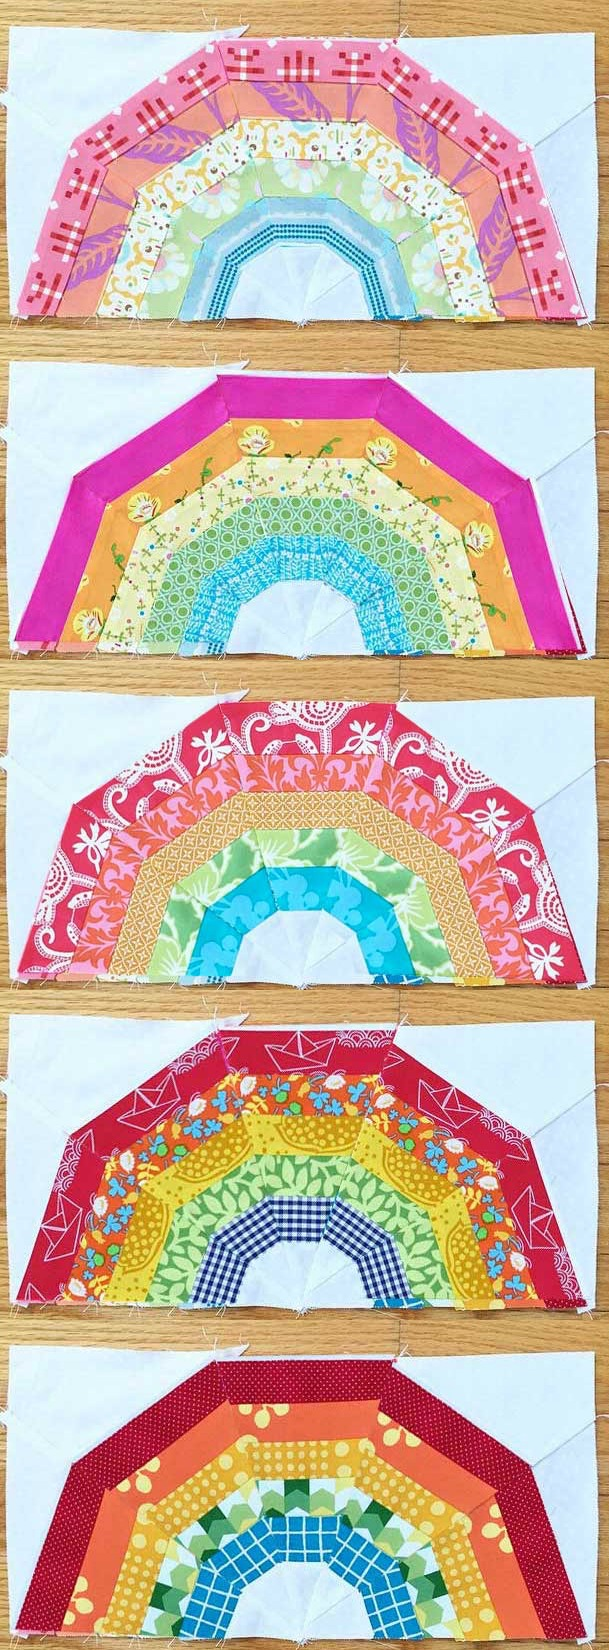 MINI giant rainbow quilt - photoshopped versions. See the post for the original!